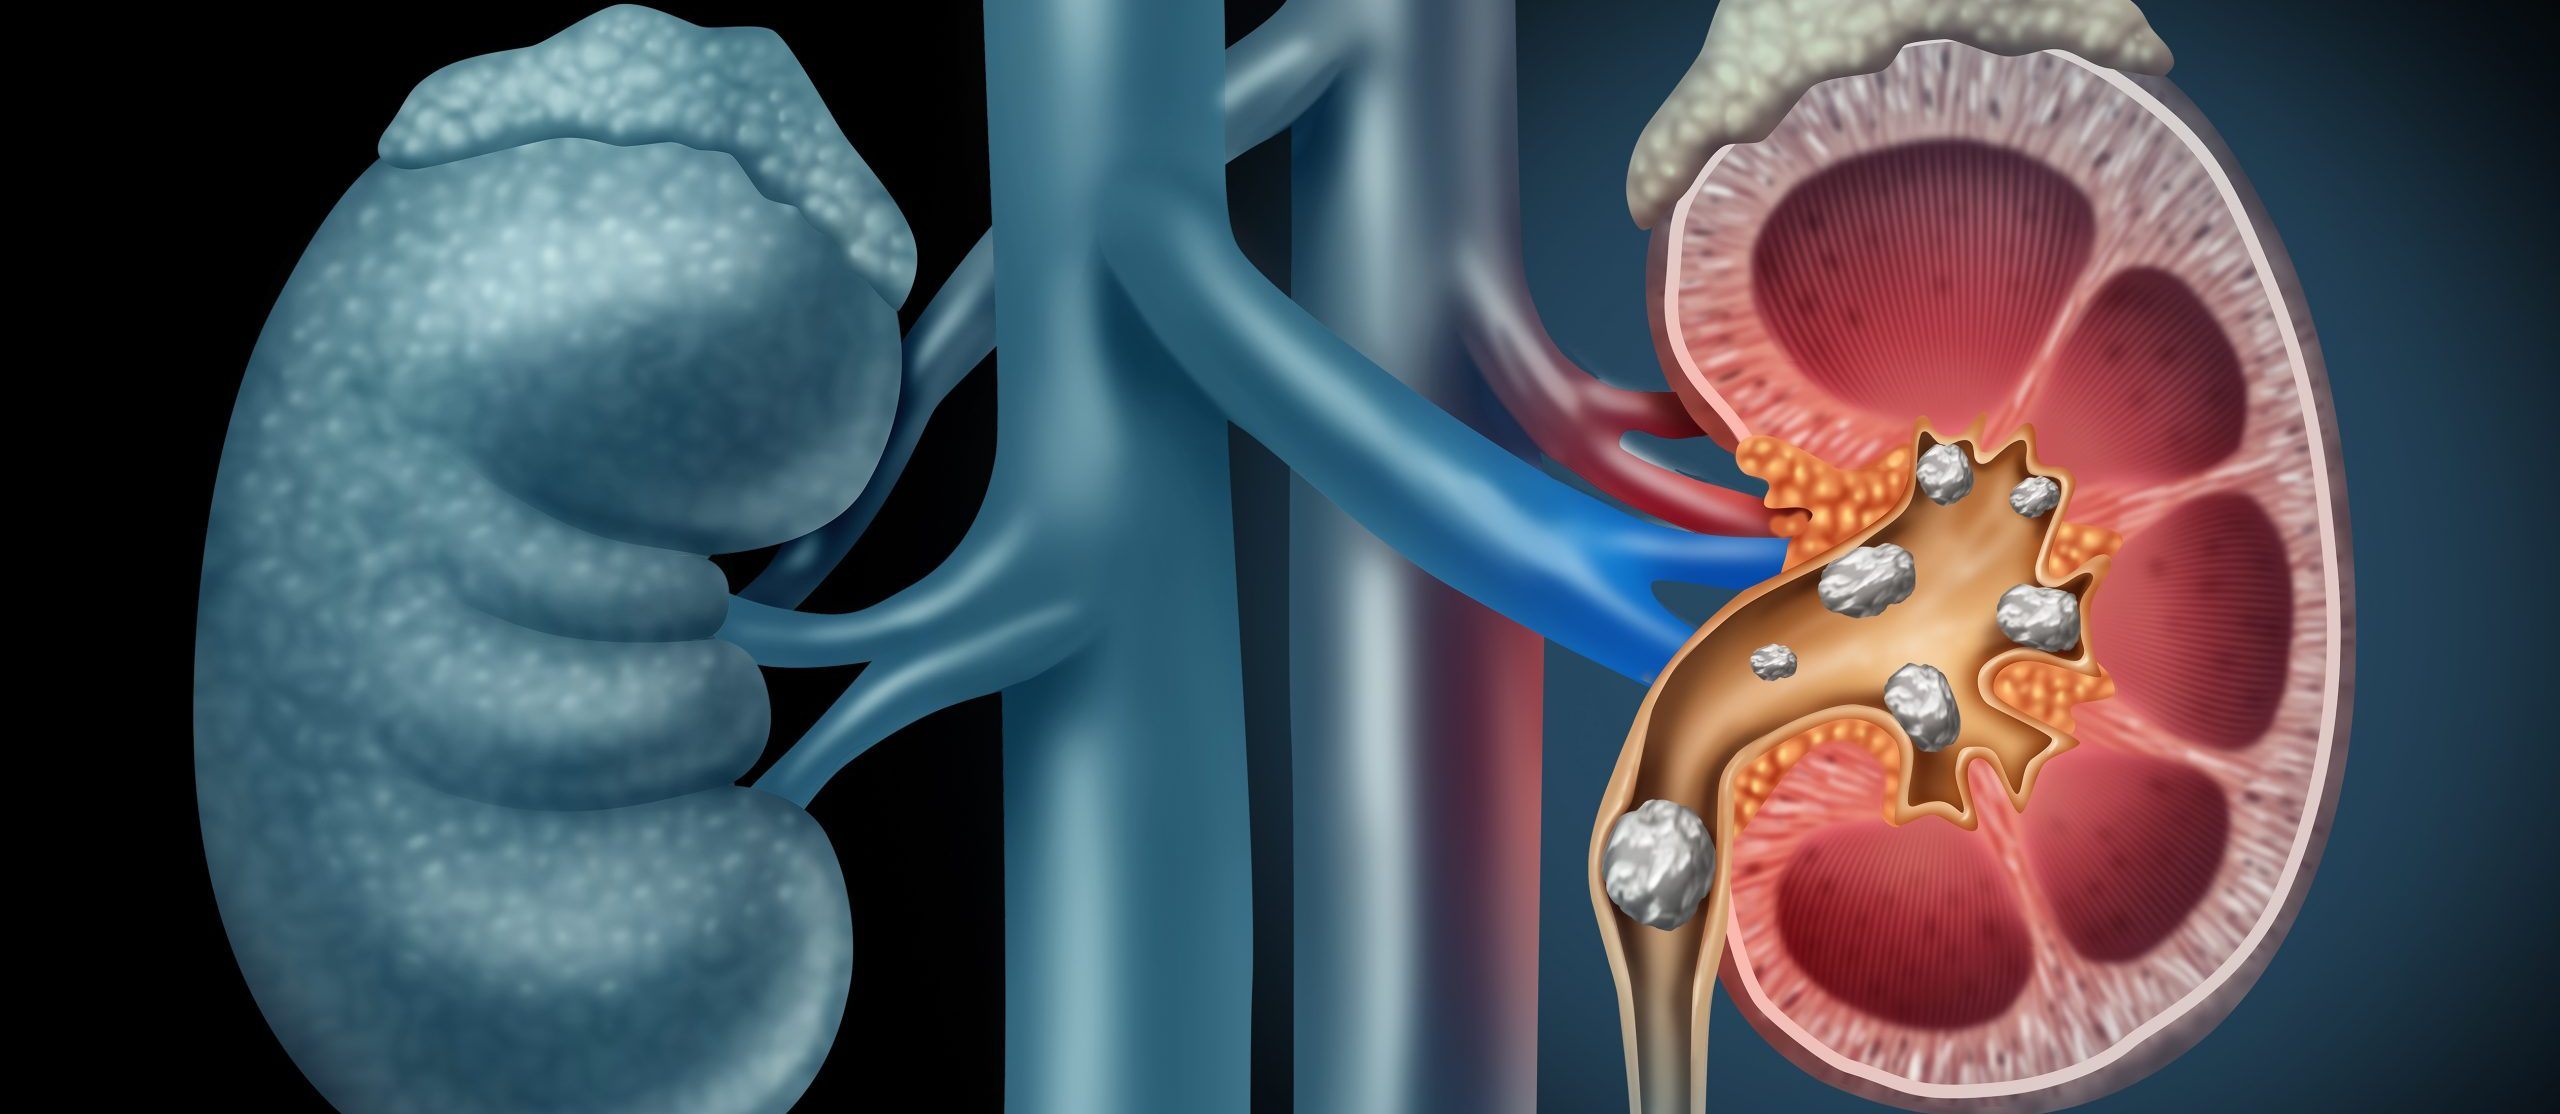 Human Kidney stones medical concept as an organ with painful crystaline mineral formations as a medicine symbol with a cross section with 3D illustration elements.